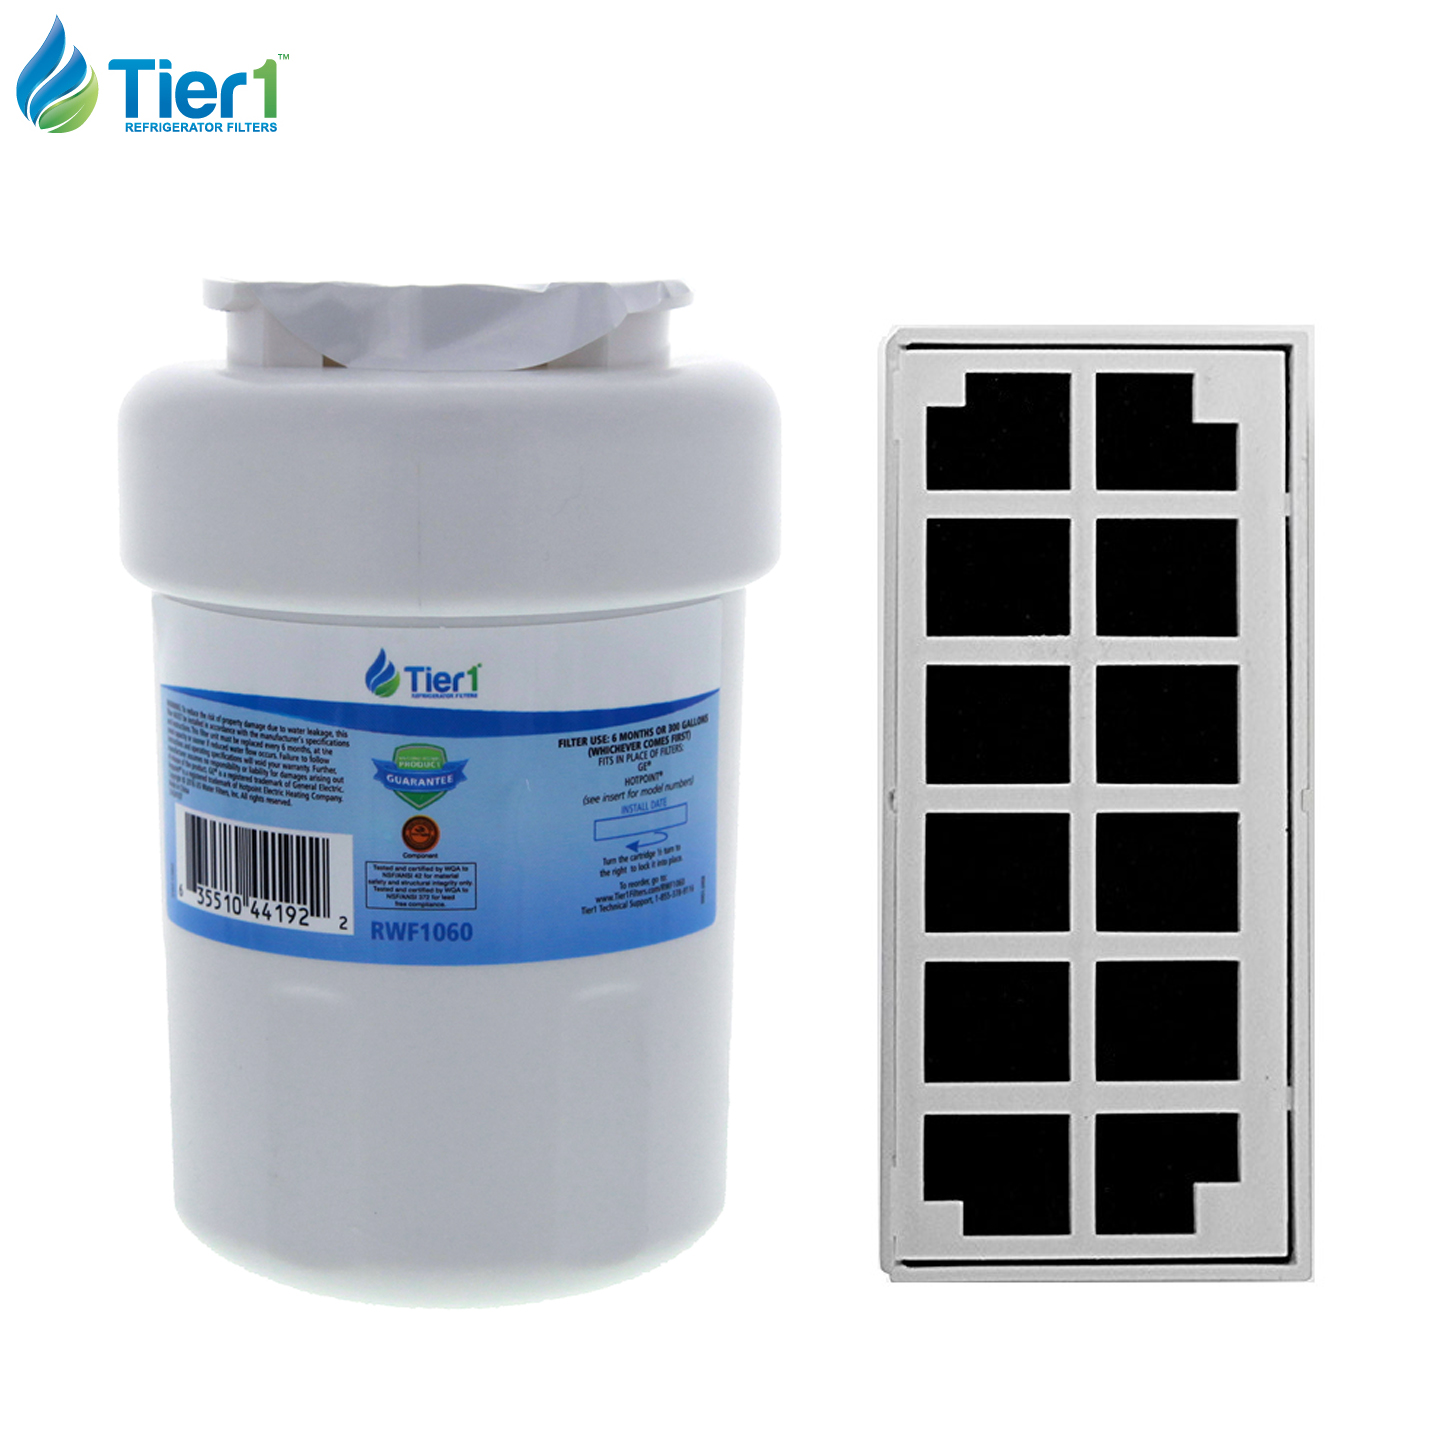 GE MWF Comparable Refrigerator Water & Odor Air Filter Combo by Tier1 TIER1_RWF1060_COMBO